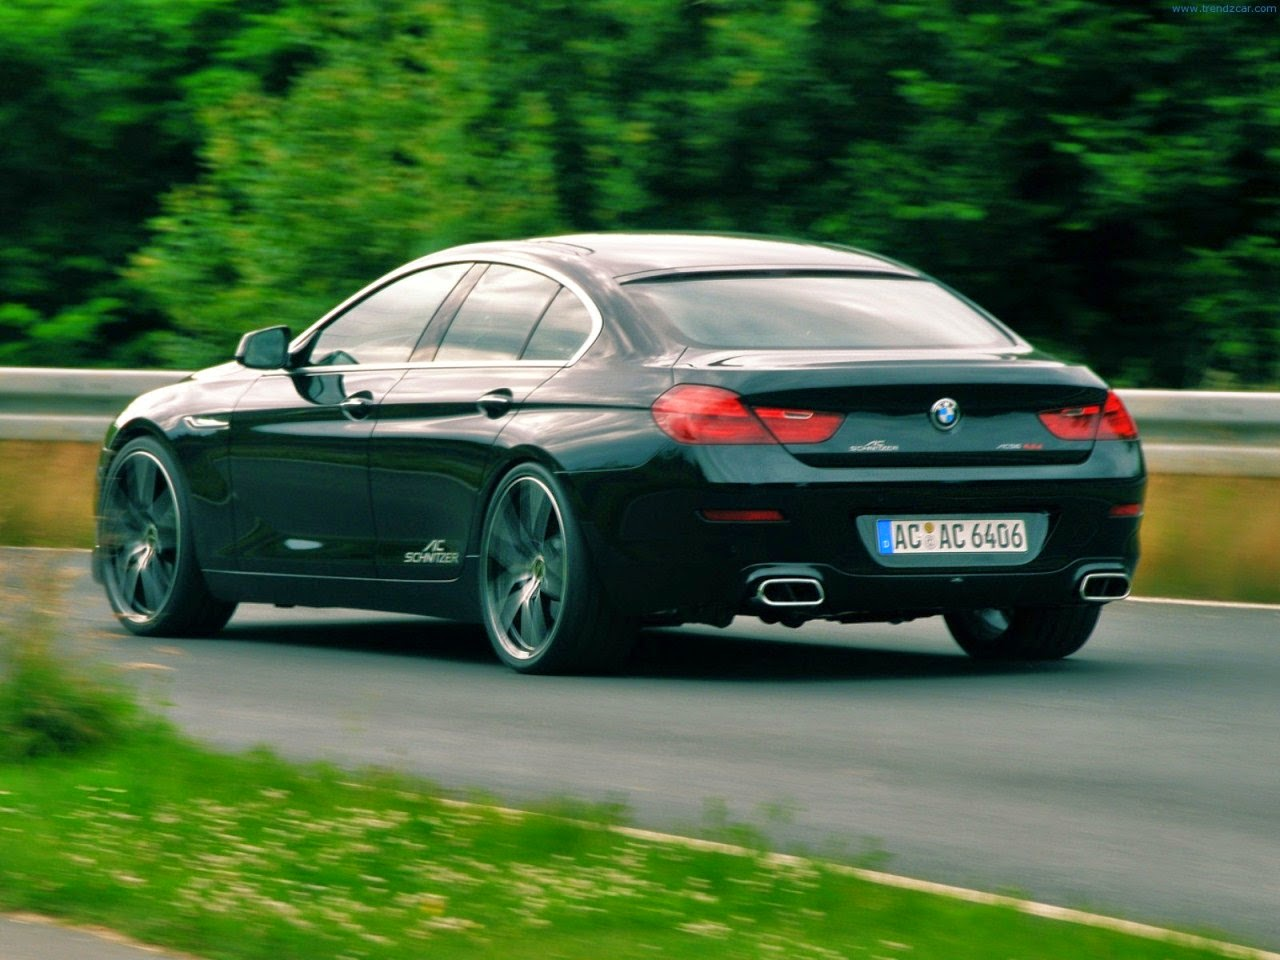 bmw 2 series gran coupe car wallpapers 2015 car photos bmw cars prices wallpaper features. Black Bedroom Furniture Sets. Home Design Ideas